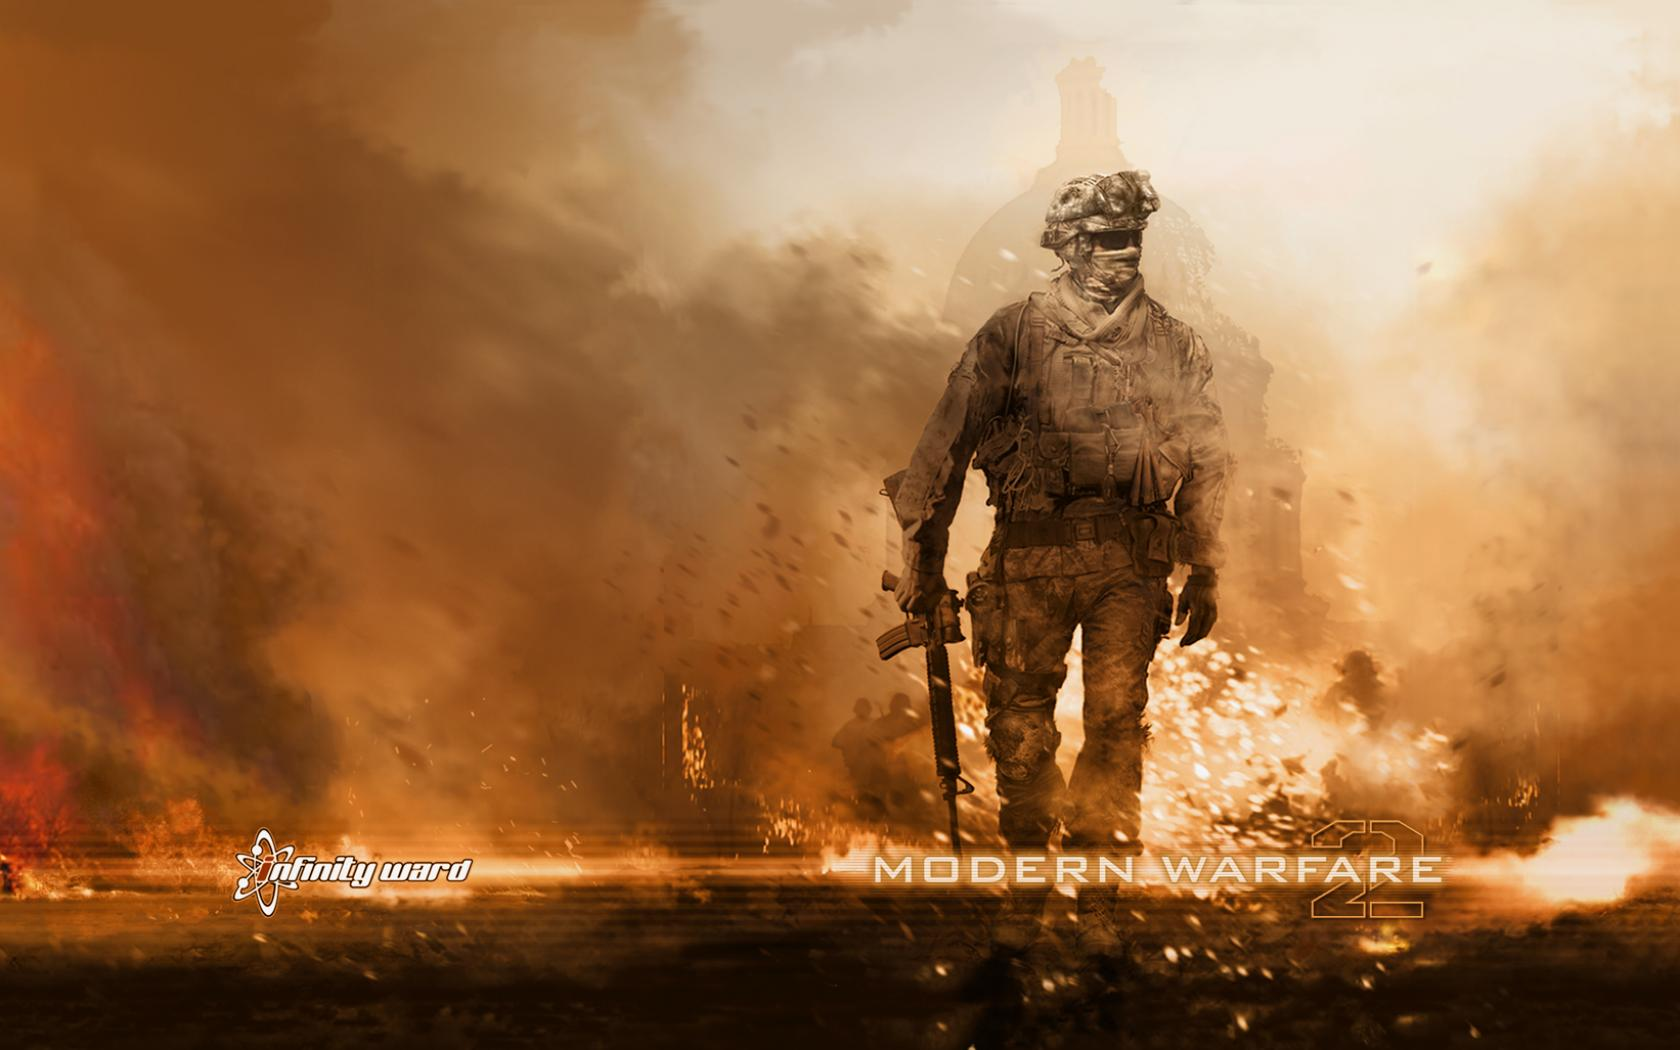 Обои Call of Duty: Modern Warfare 2, пикселей 1680x1050